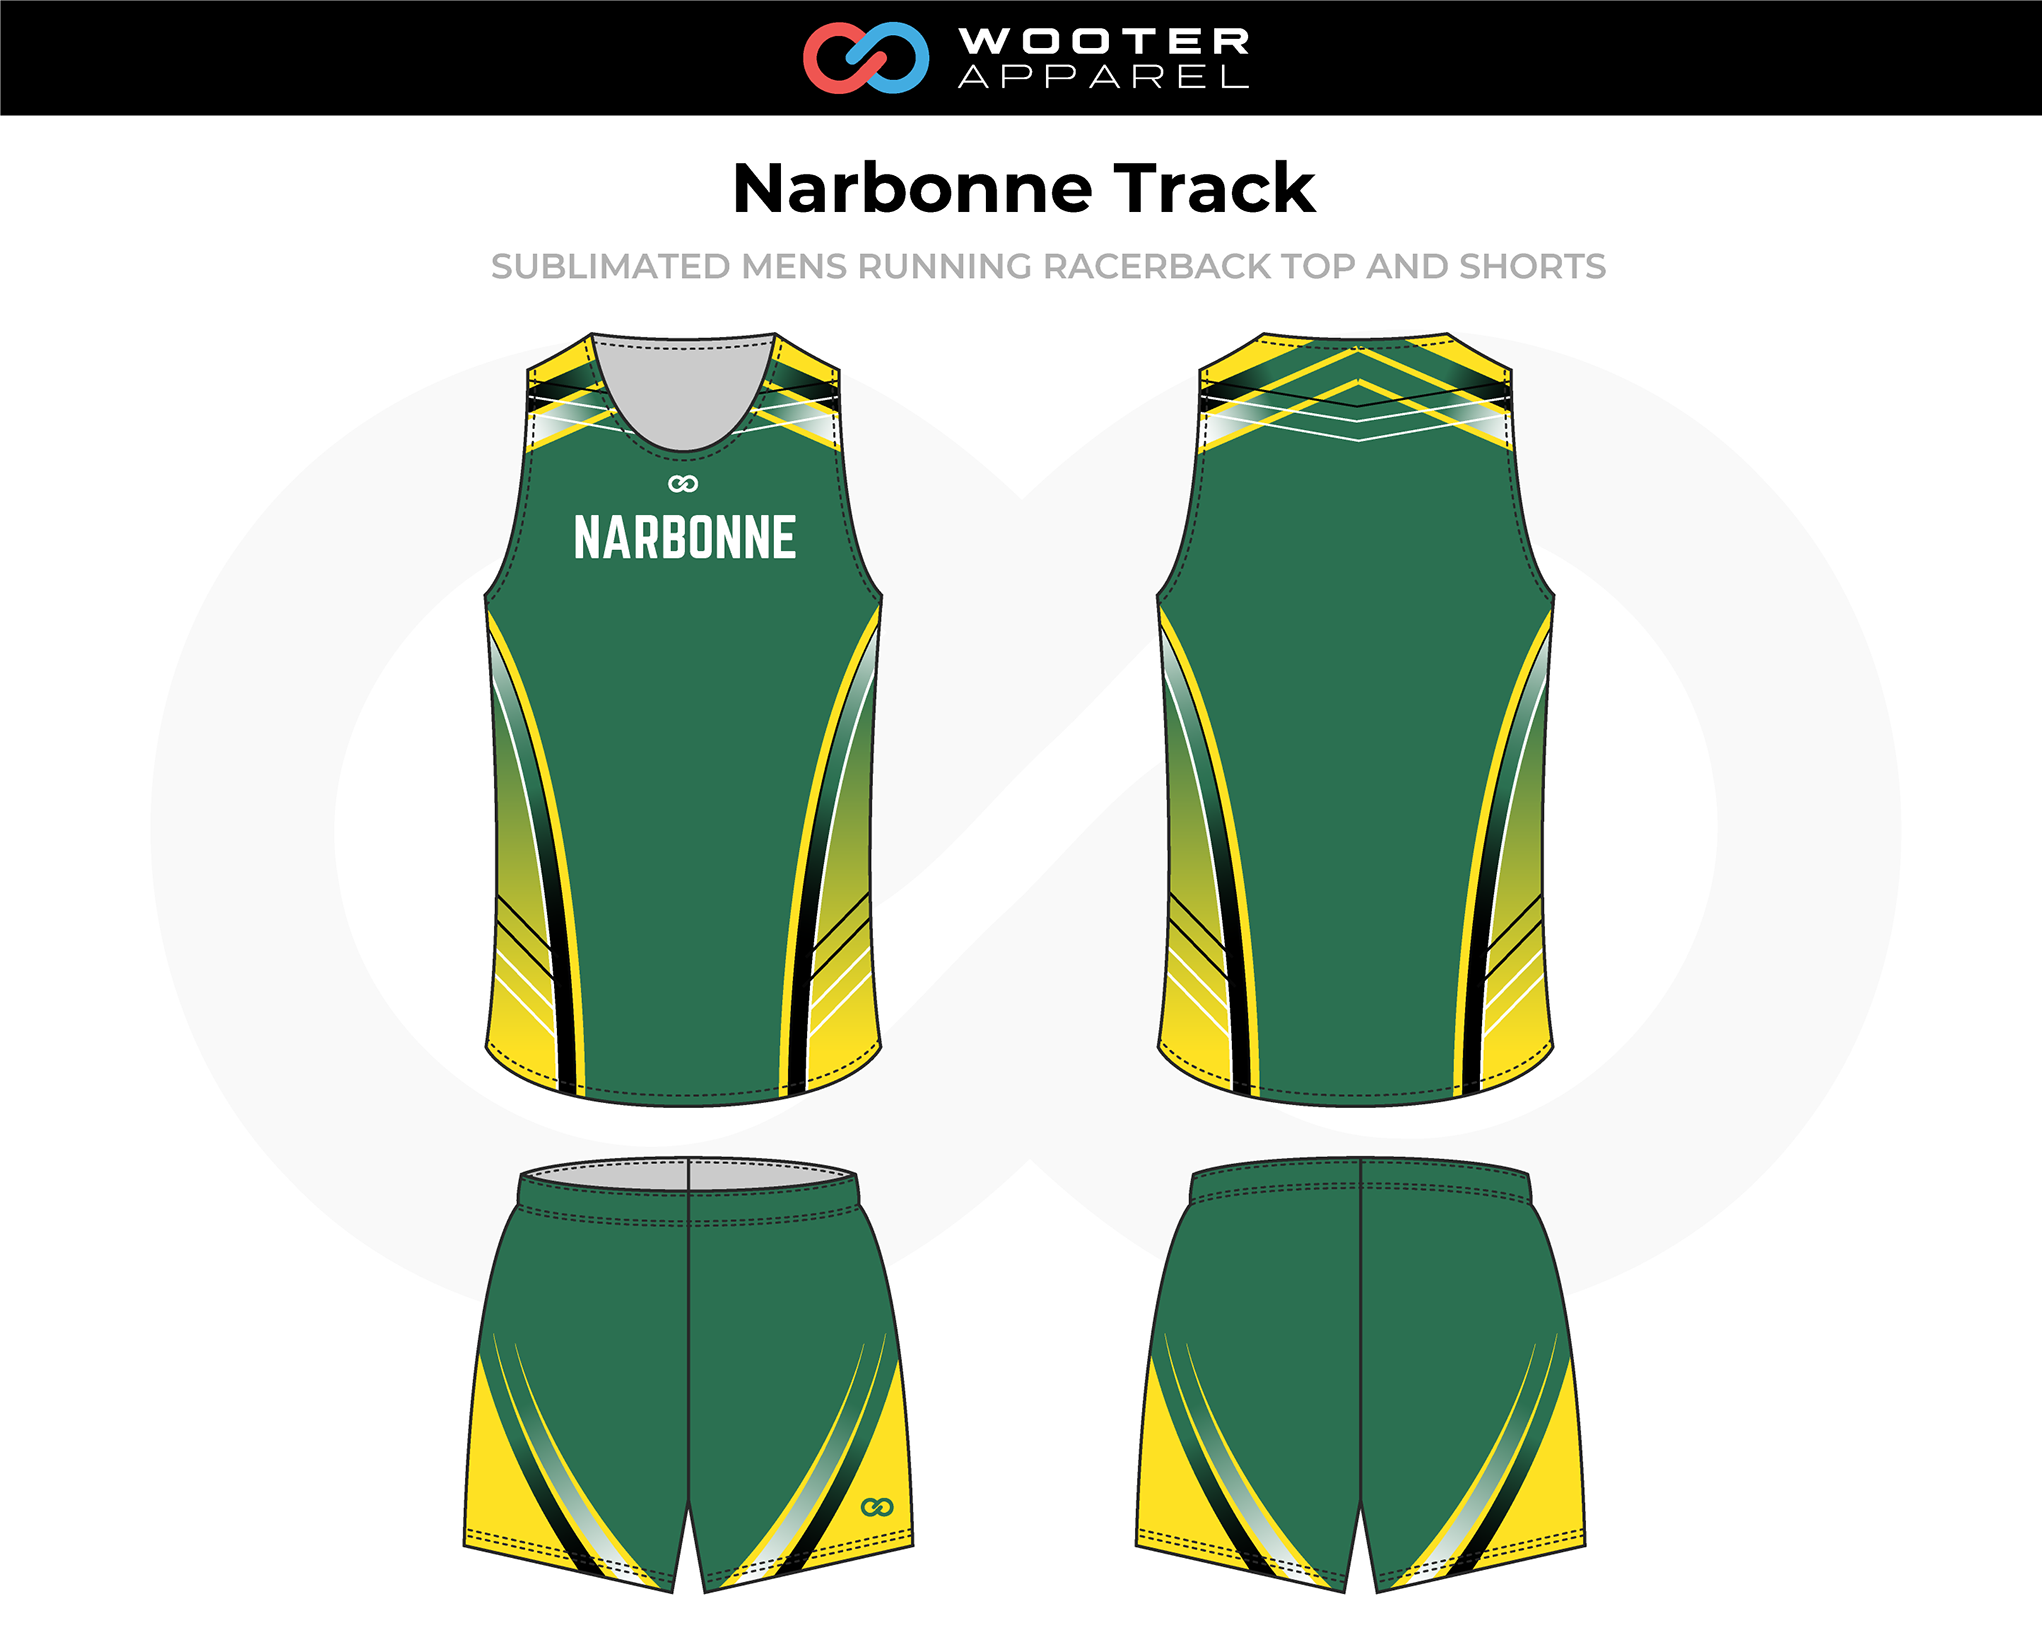 NARBONNE Green Yellow Black Men's Track Uniforms, Racerback Jerseys, and Shorts